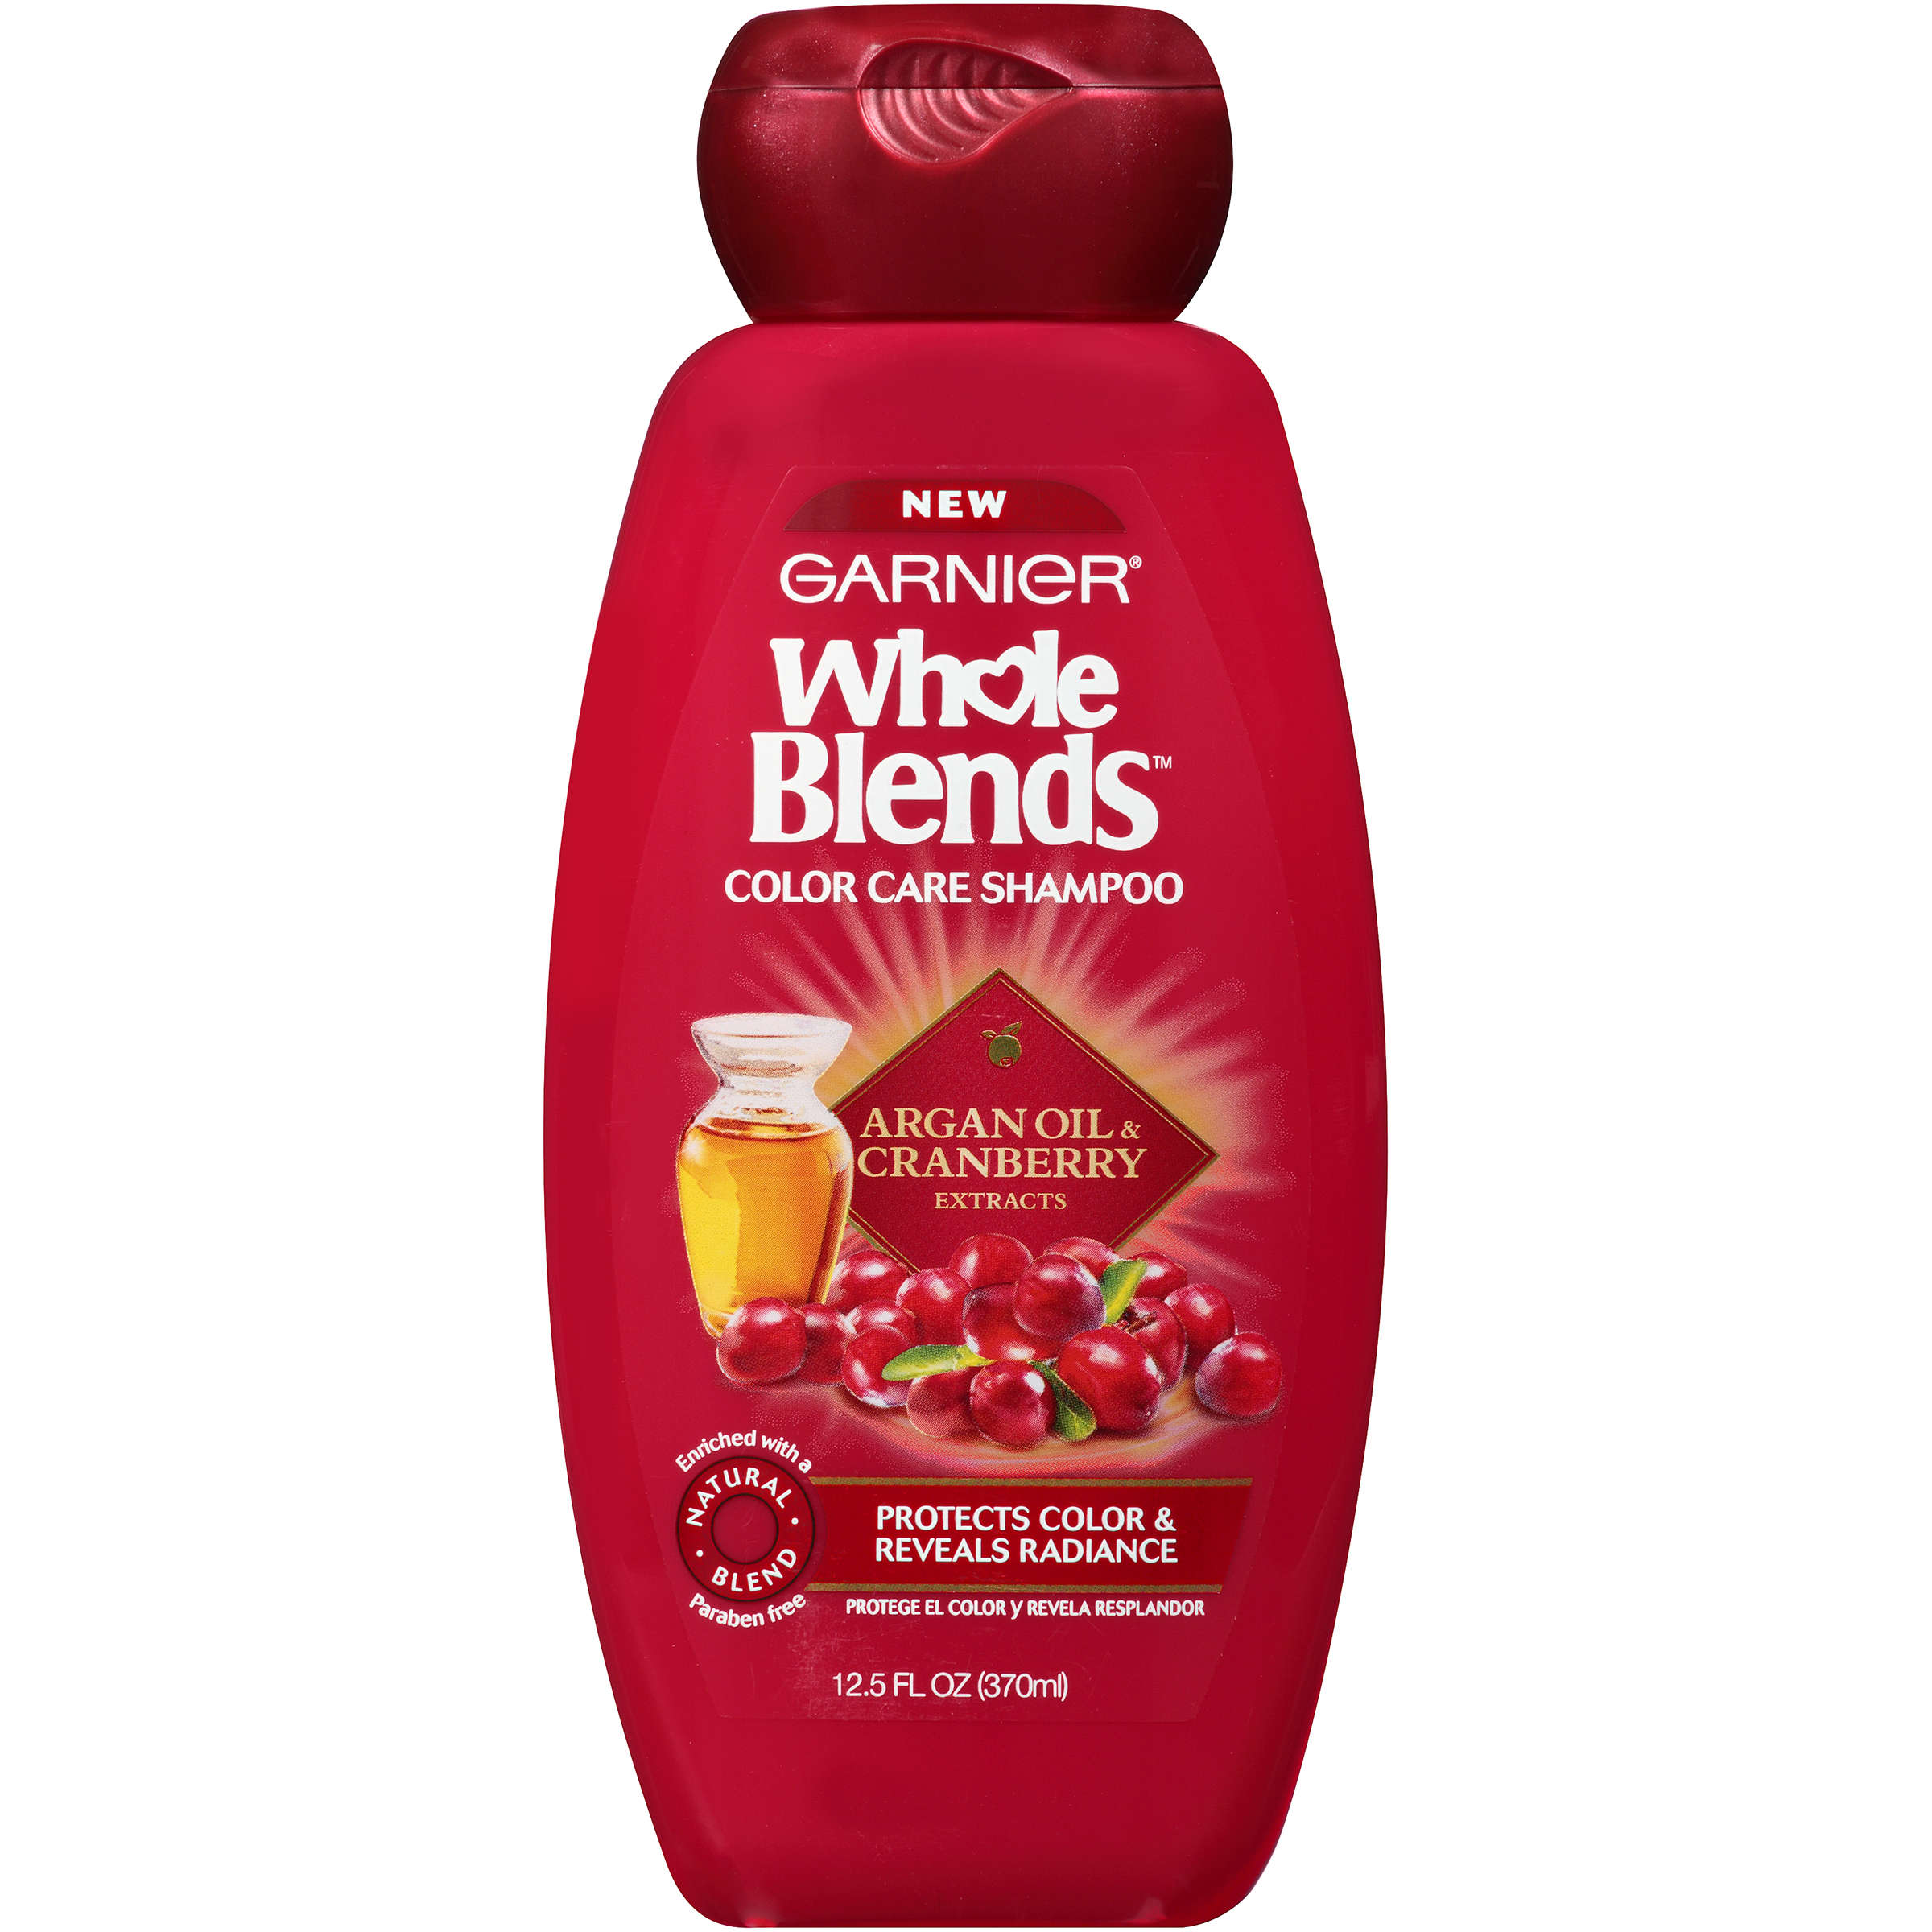 Garnier Whole Blends Shampoo with Argan Oil & Cranberry Extracts 12.5 FL OZ